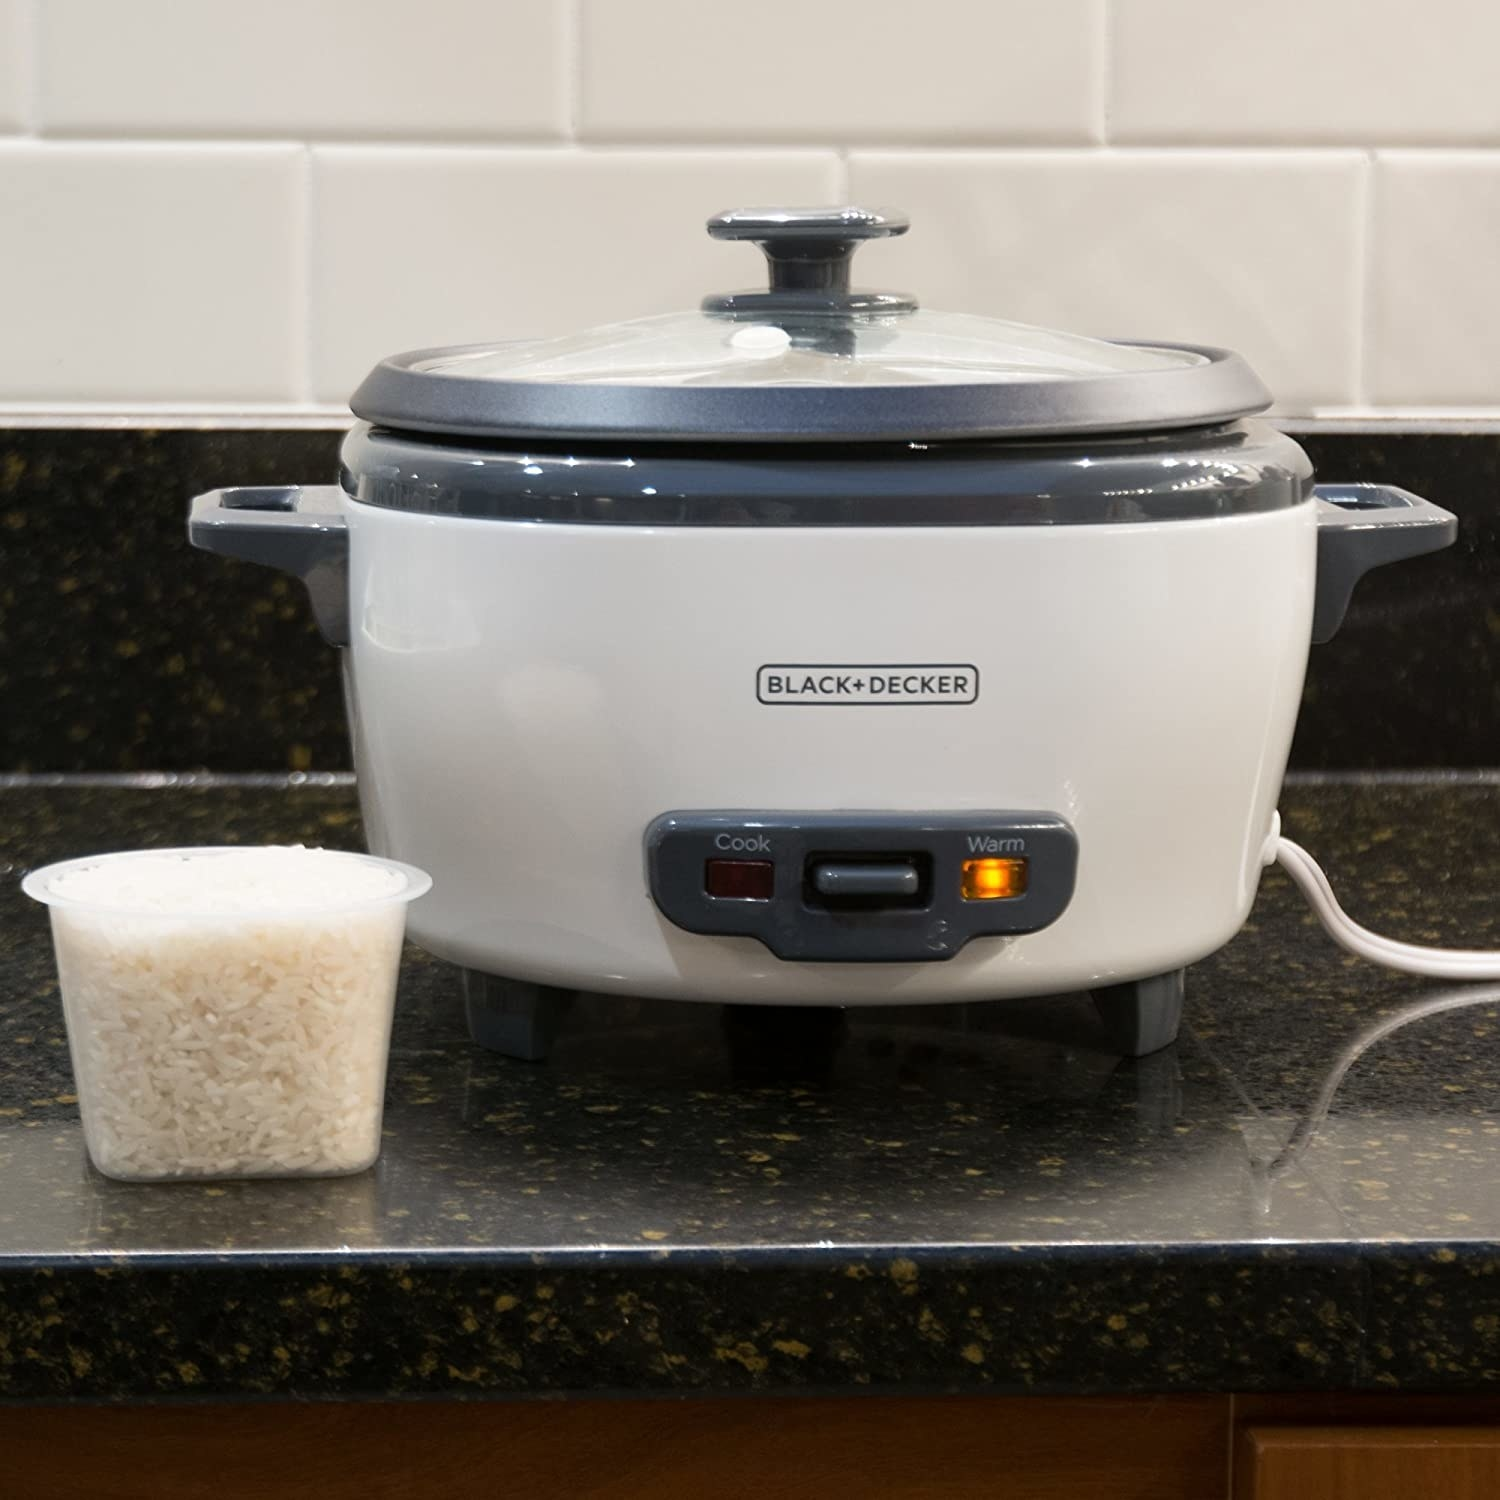 A plugged in rice cooker beside a cup of rice